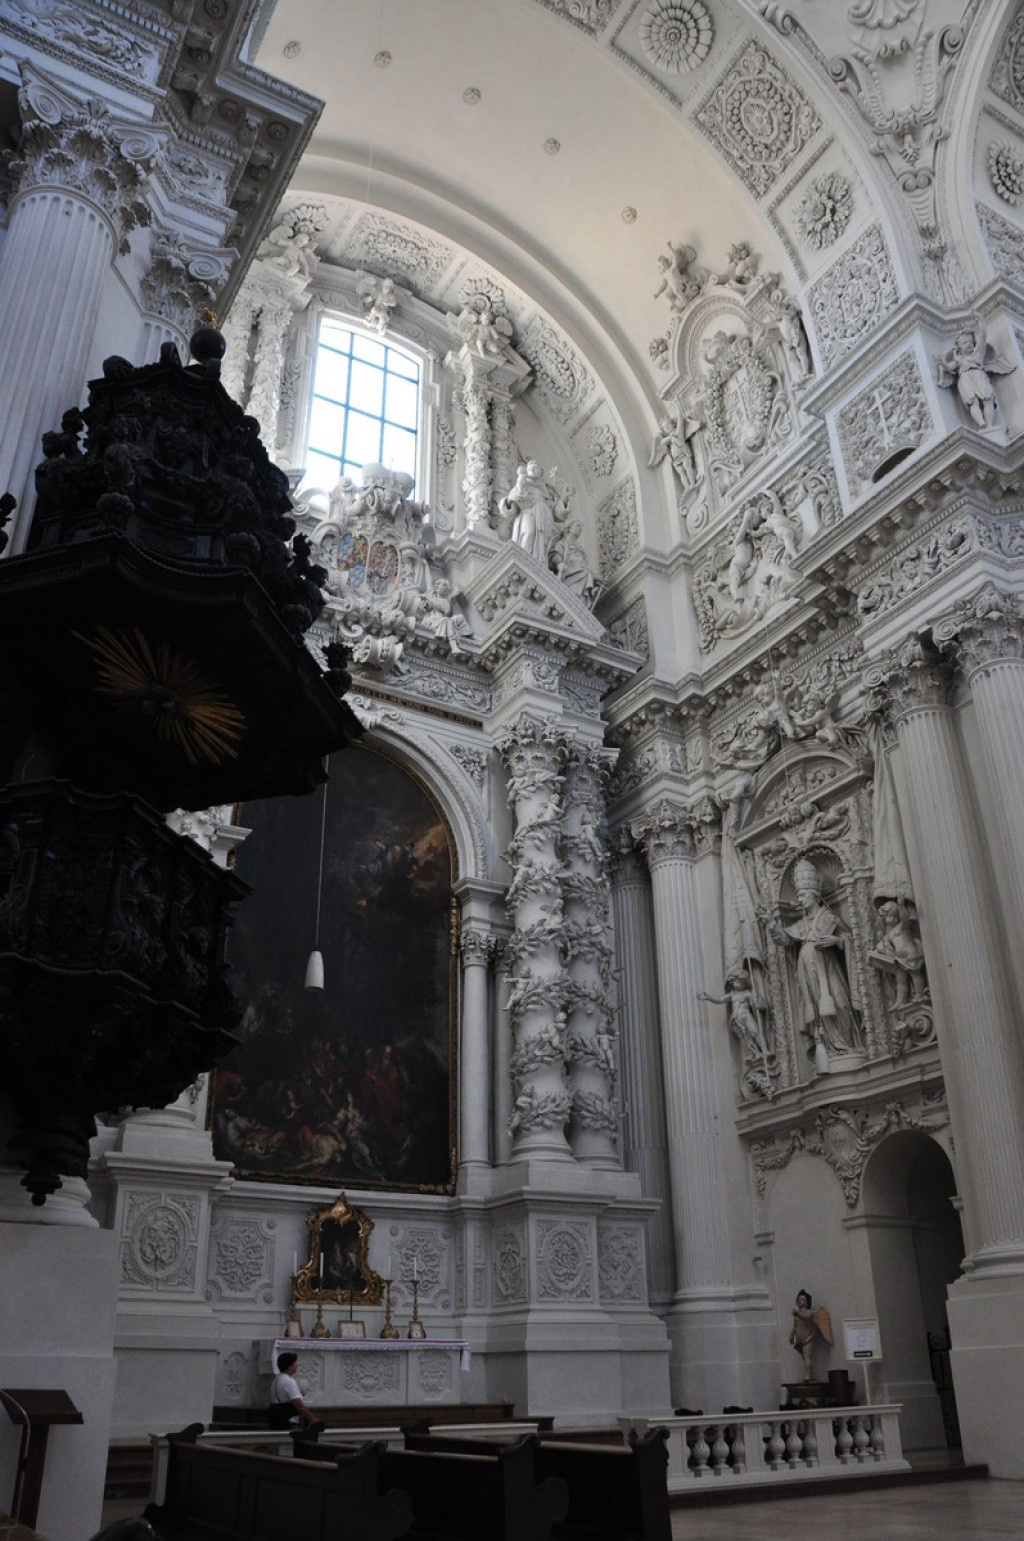 The churches of Munich were some of the most beautiful we've seen.